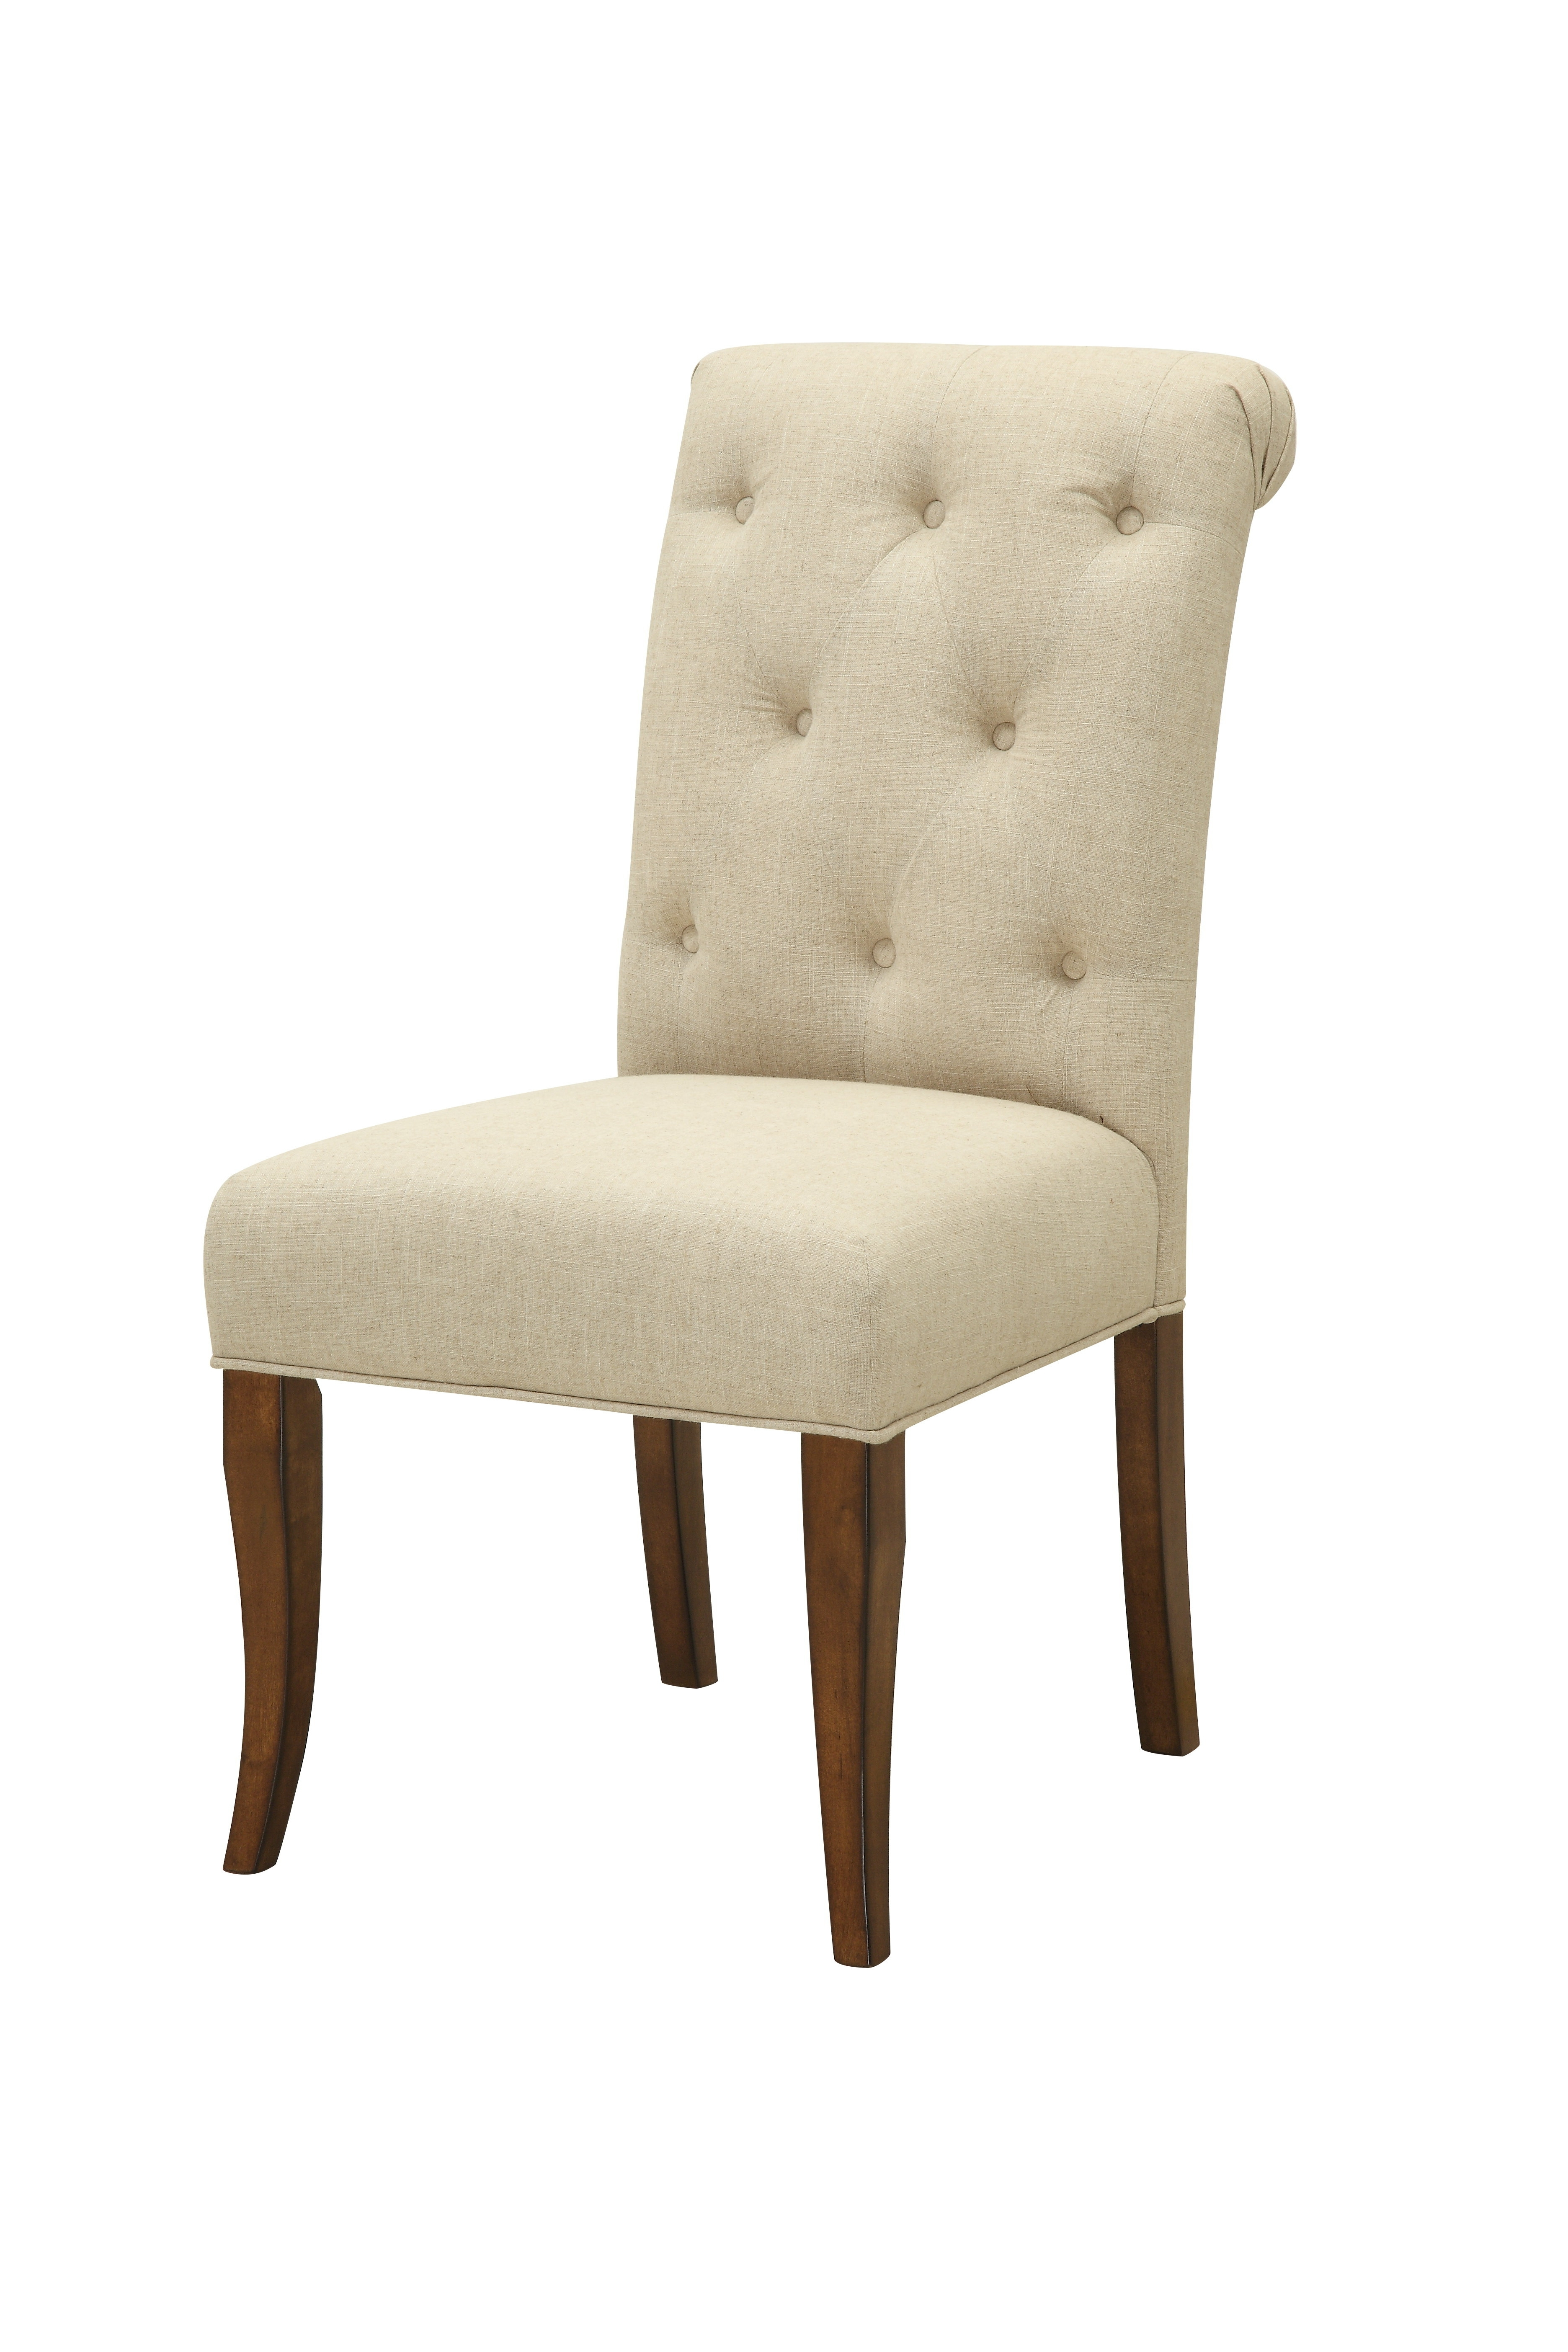 Wayfair Pertaining To 2018 Candice Ii Slat Back Side Chairs (View 13 of 20)